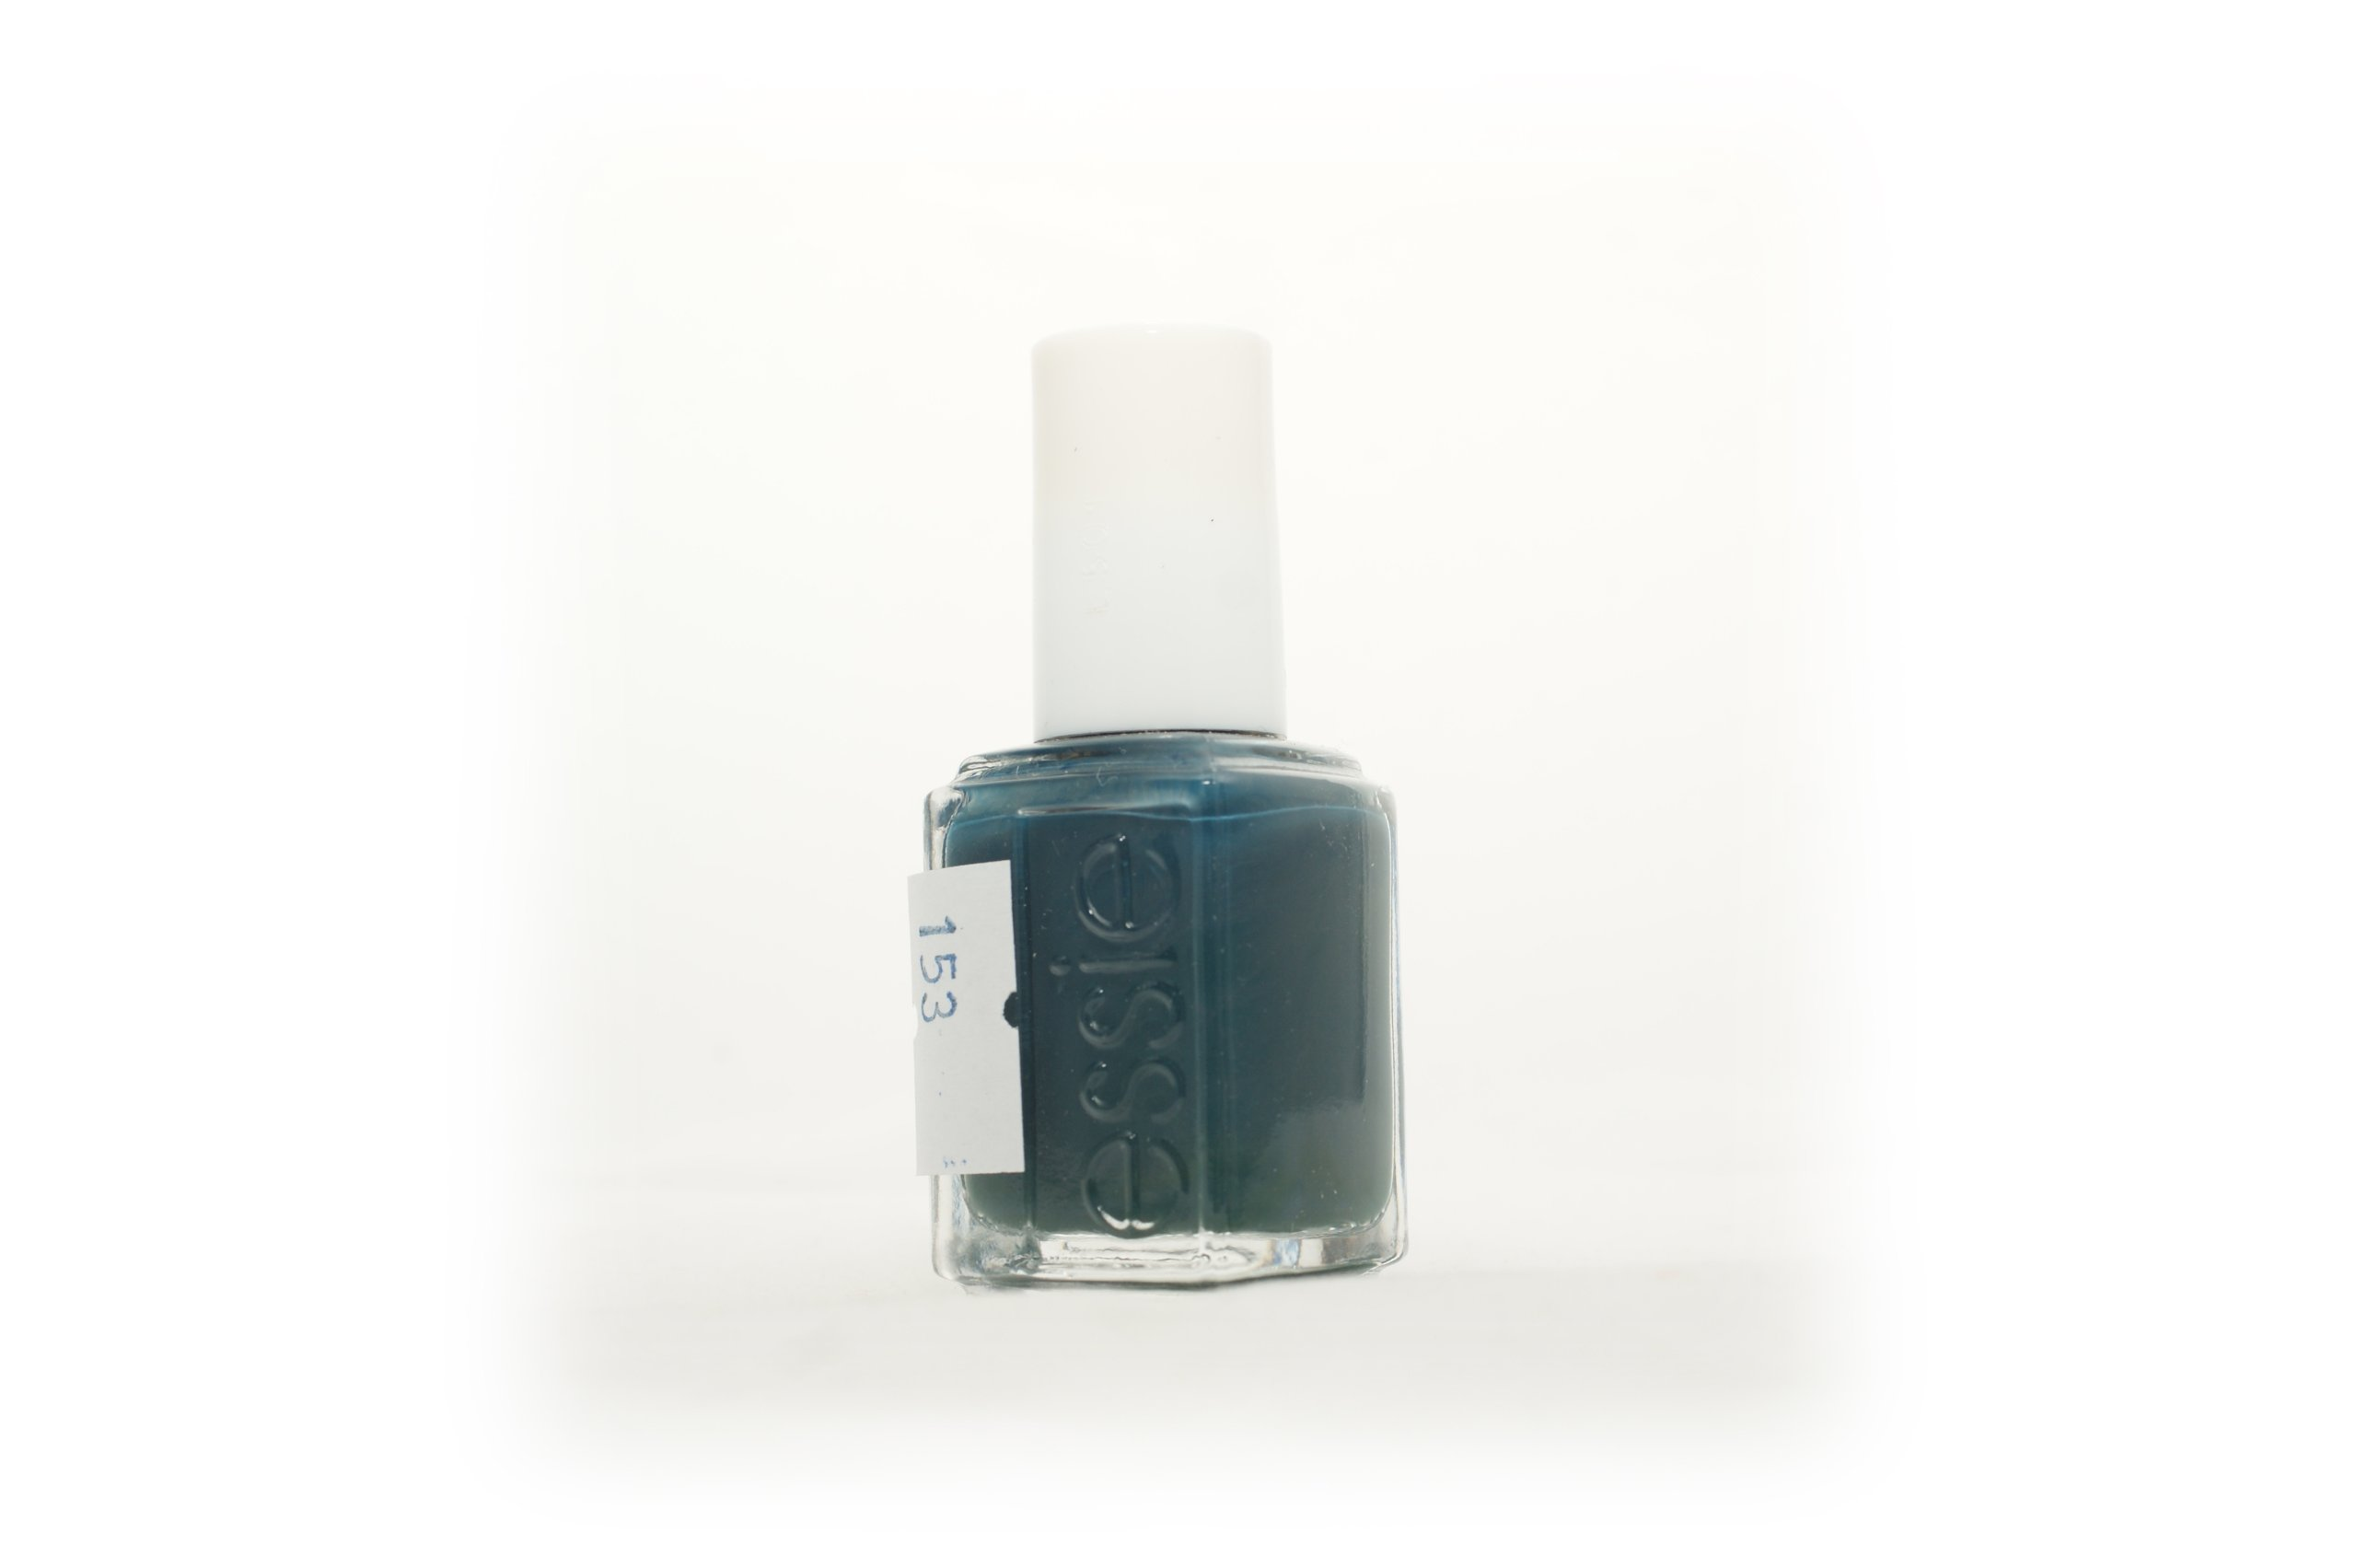 153 Lakier Do Paznokci ESSIE 880 the perfect cover